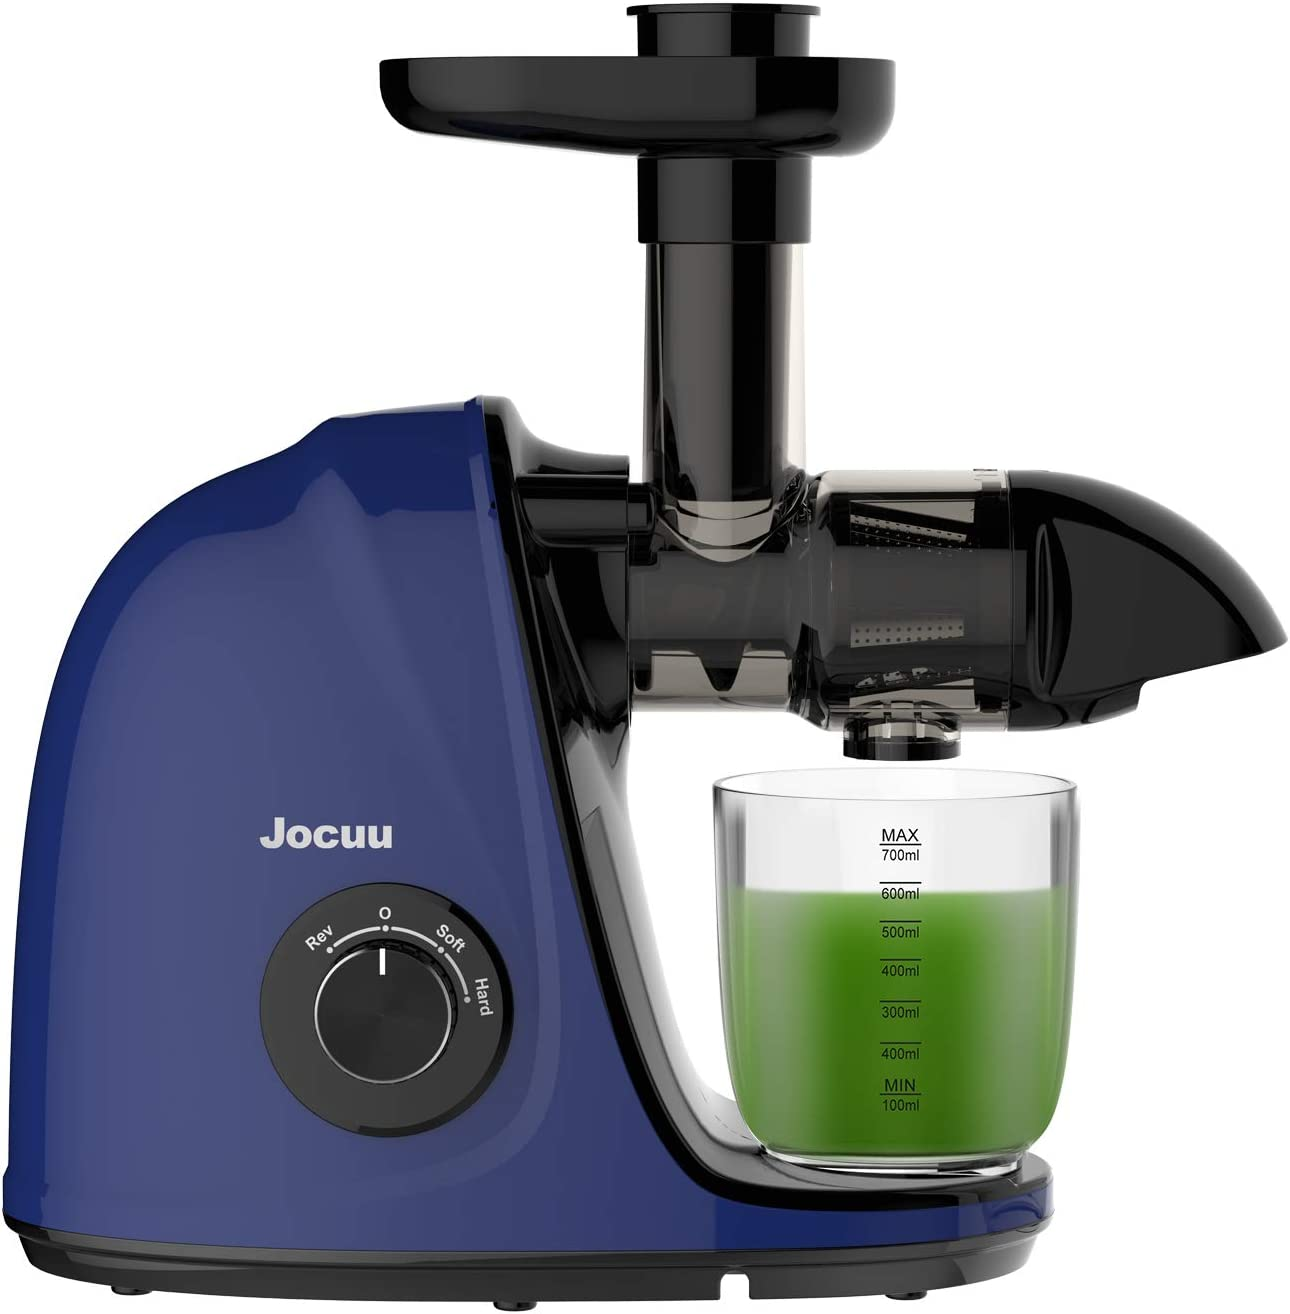 Jocuu Slow Masticating Juicer Machine, Cold Press Juice Extractor Easy to Clean, Soft/Hard Dual-Speed Quiet Motor Reverse Function Anti-Clogging, with Brush & Recipe (Premium Blue)